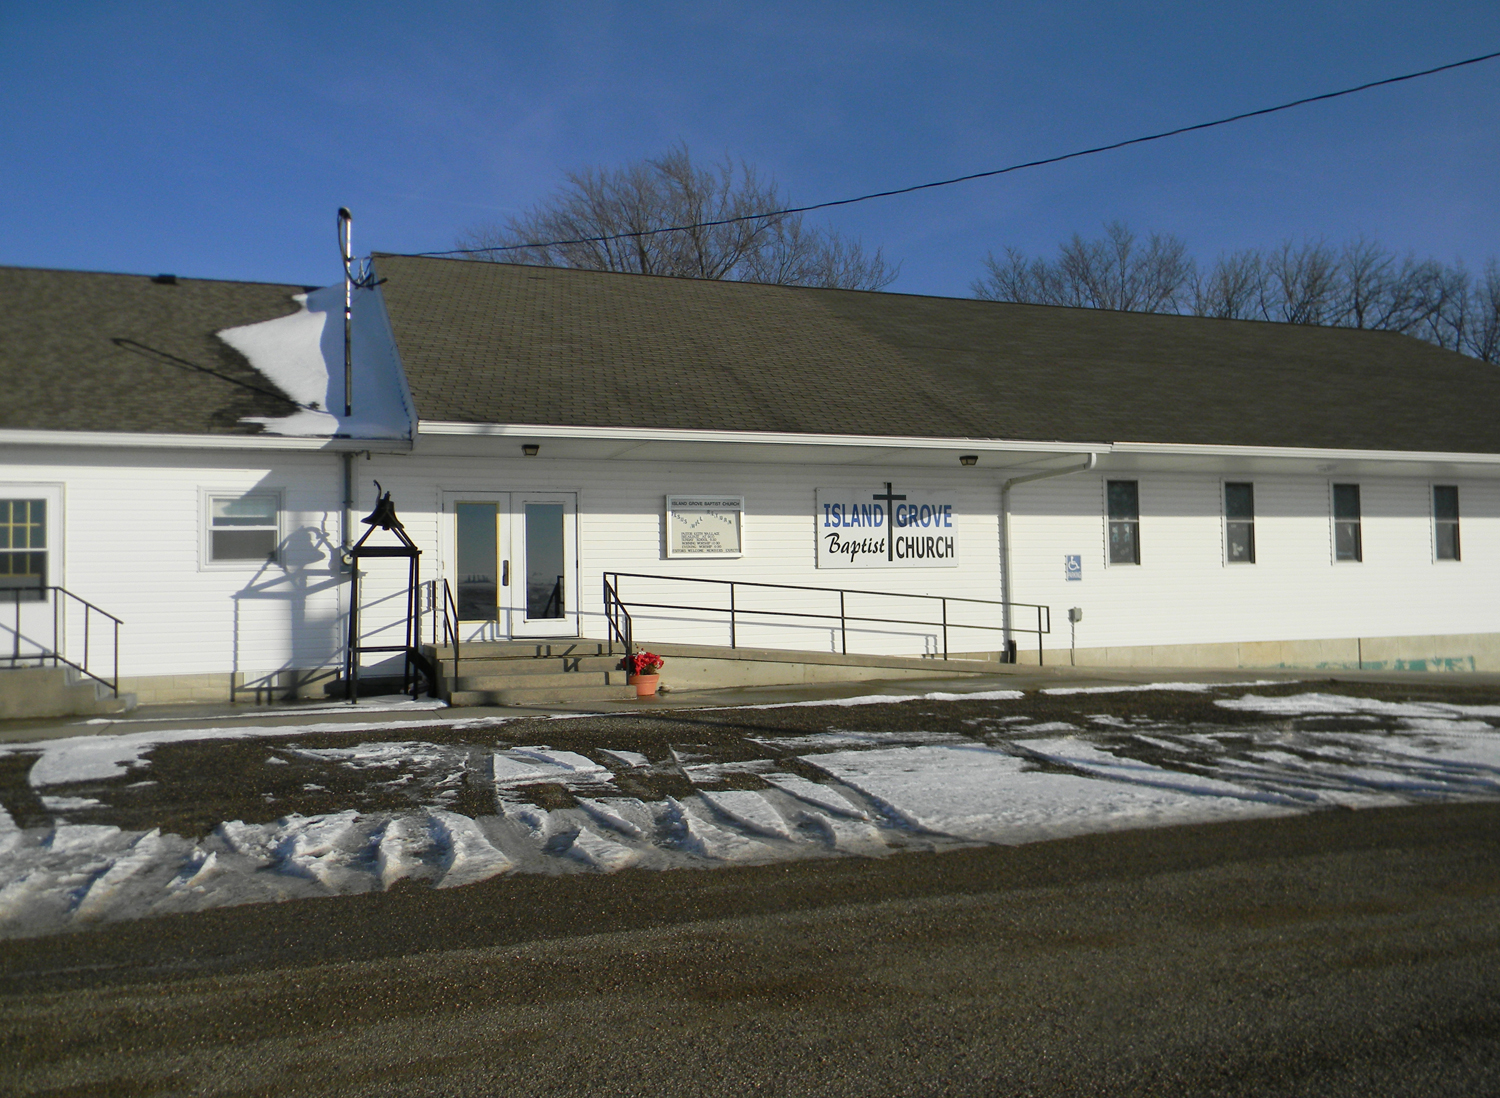 islandgrovebaptistchurch5in